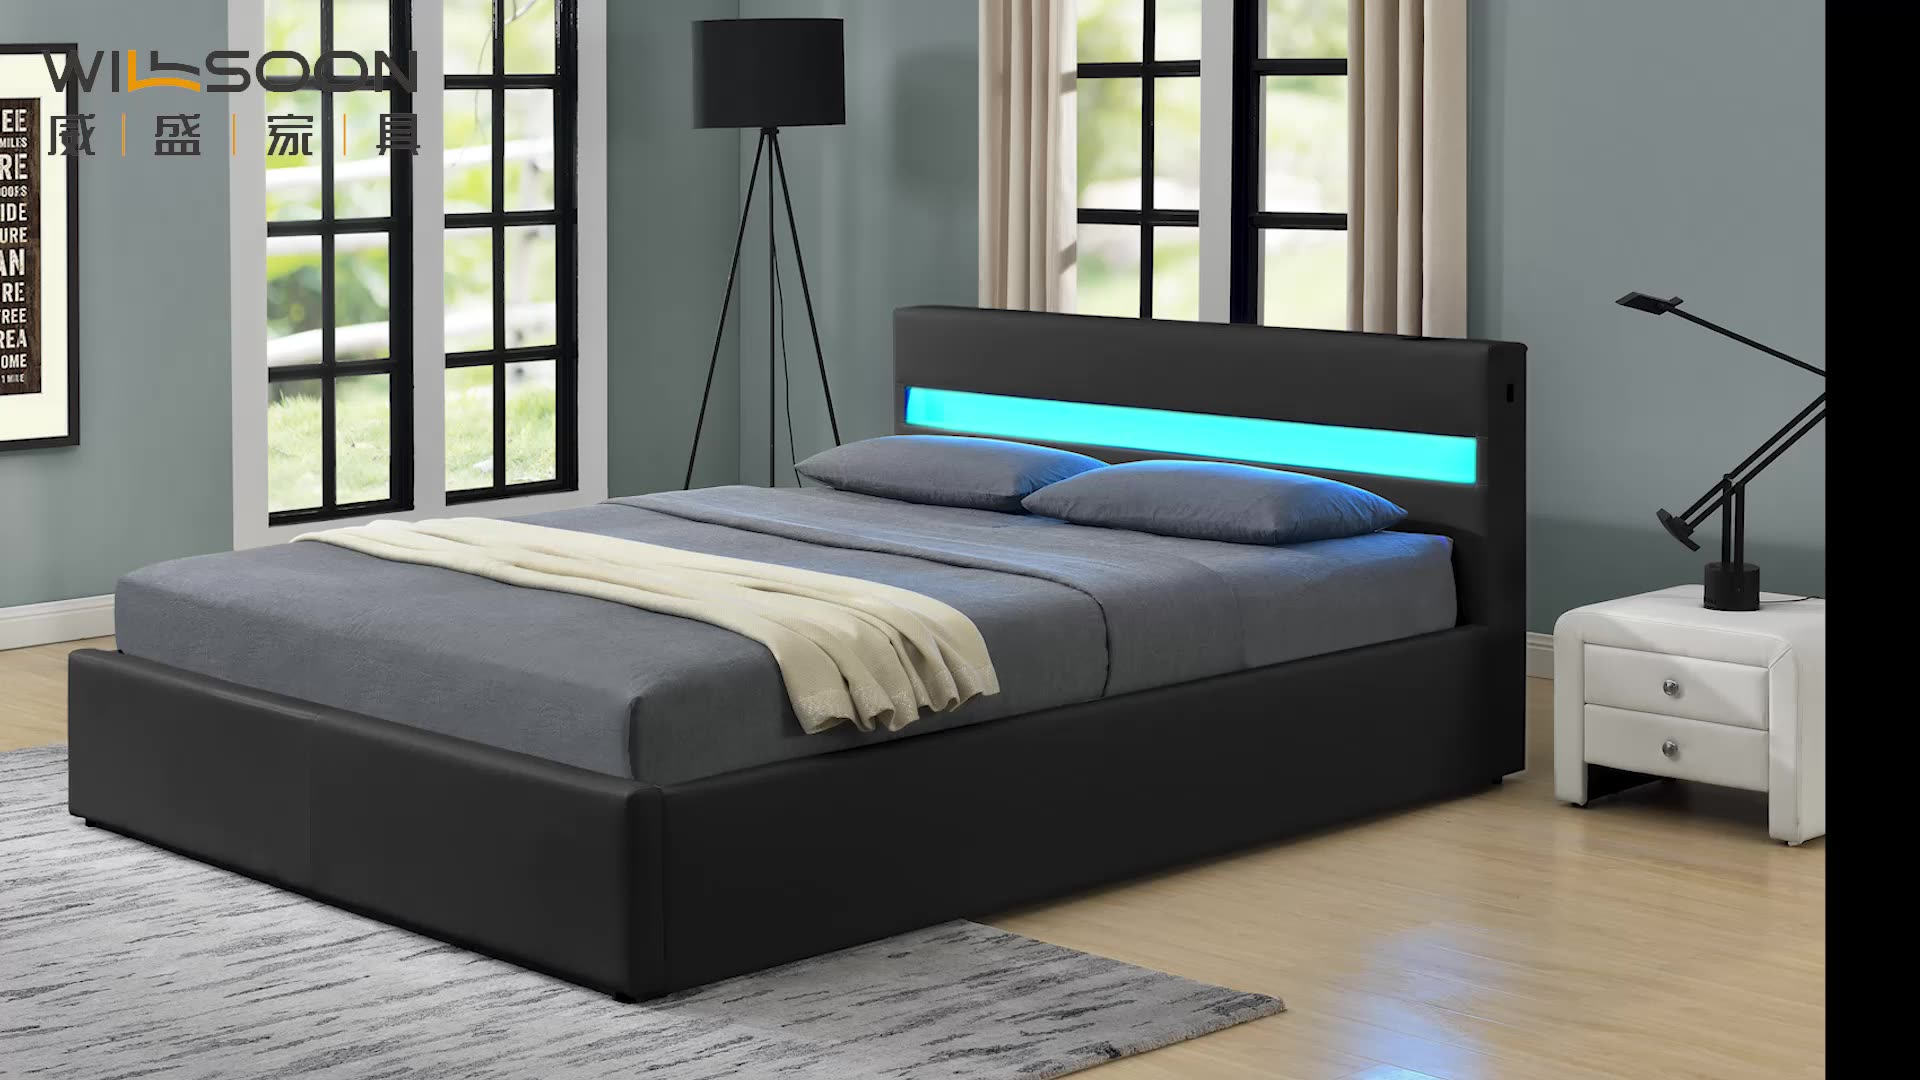 upholstery PU leather storage gas lift bed with Bluetooth Speaker and storage